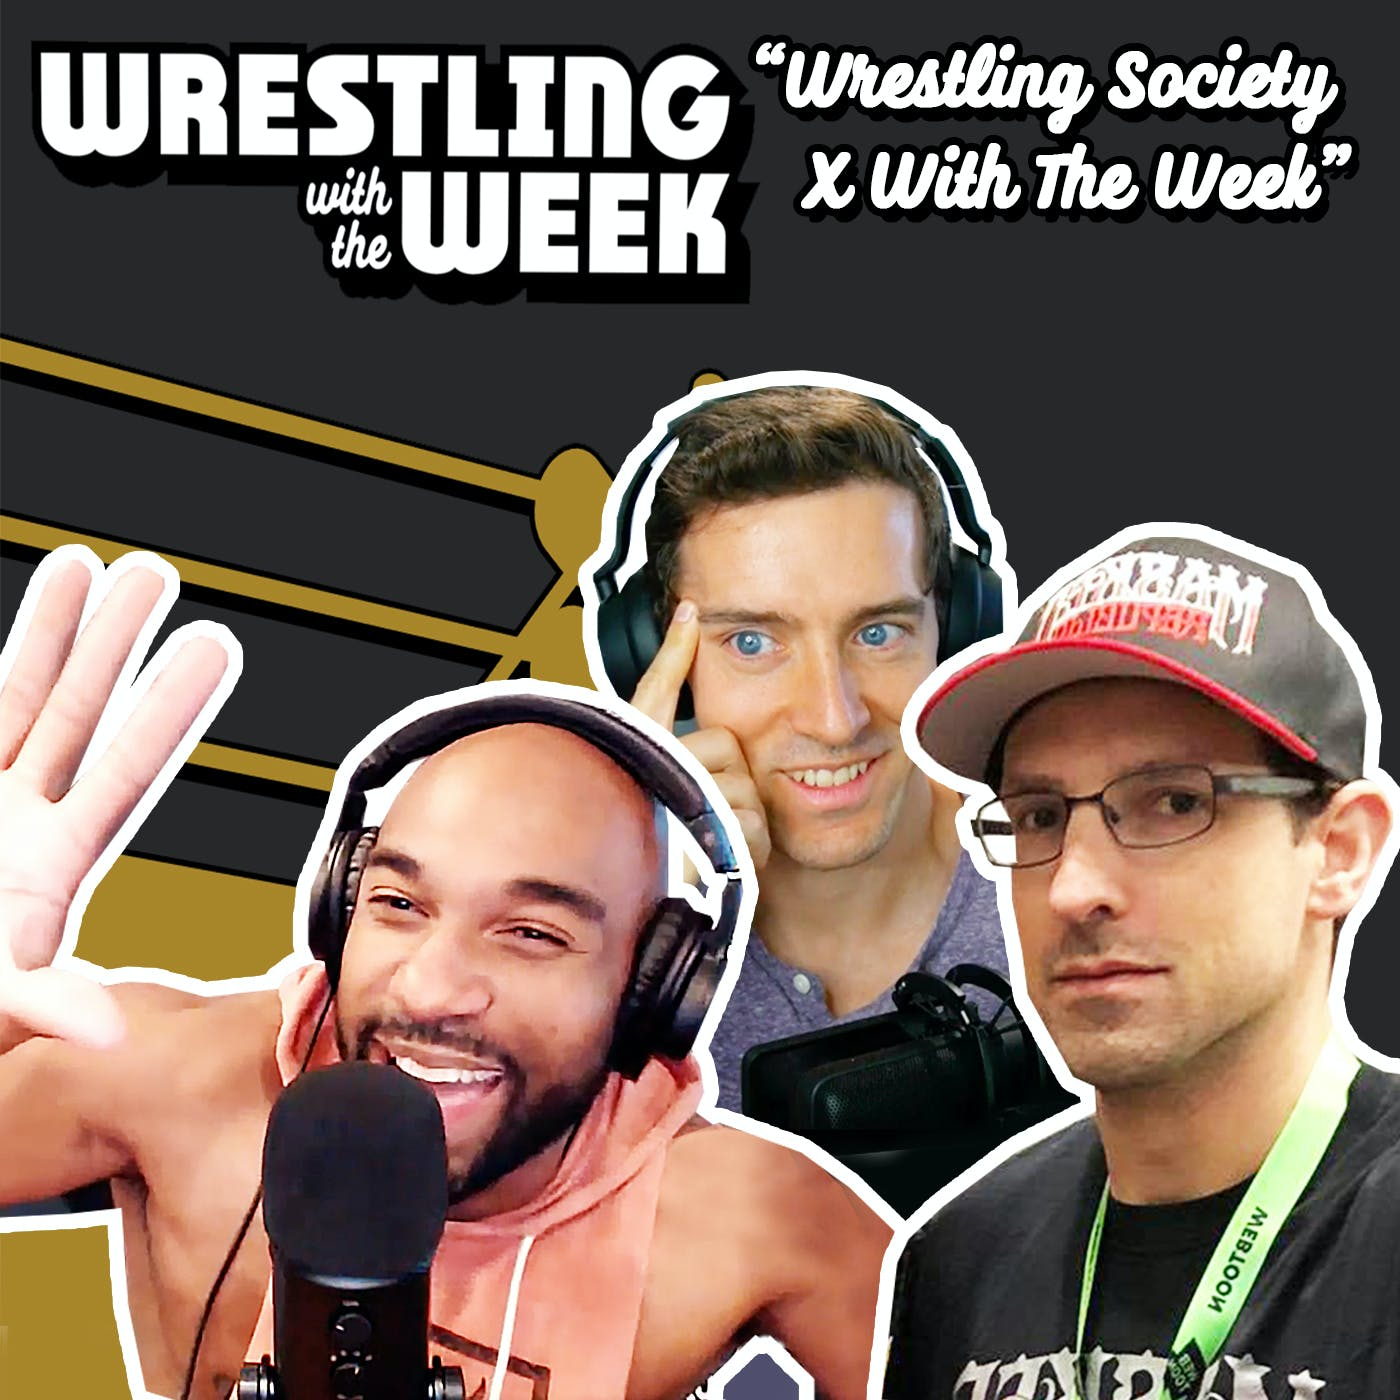 Wrestling Society X With The Week